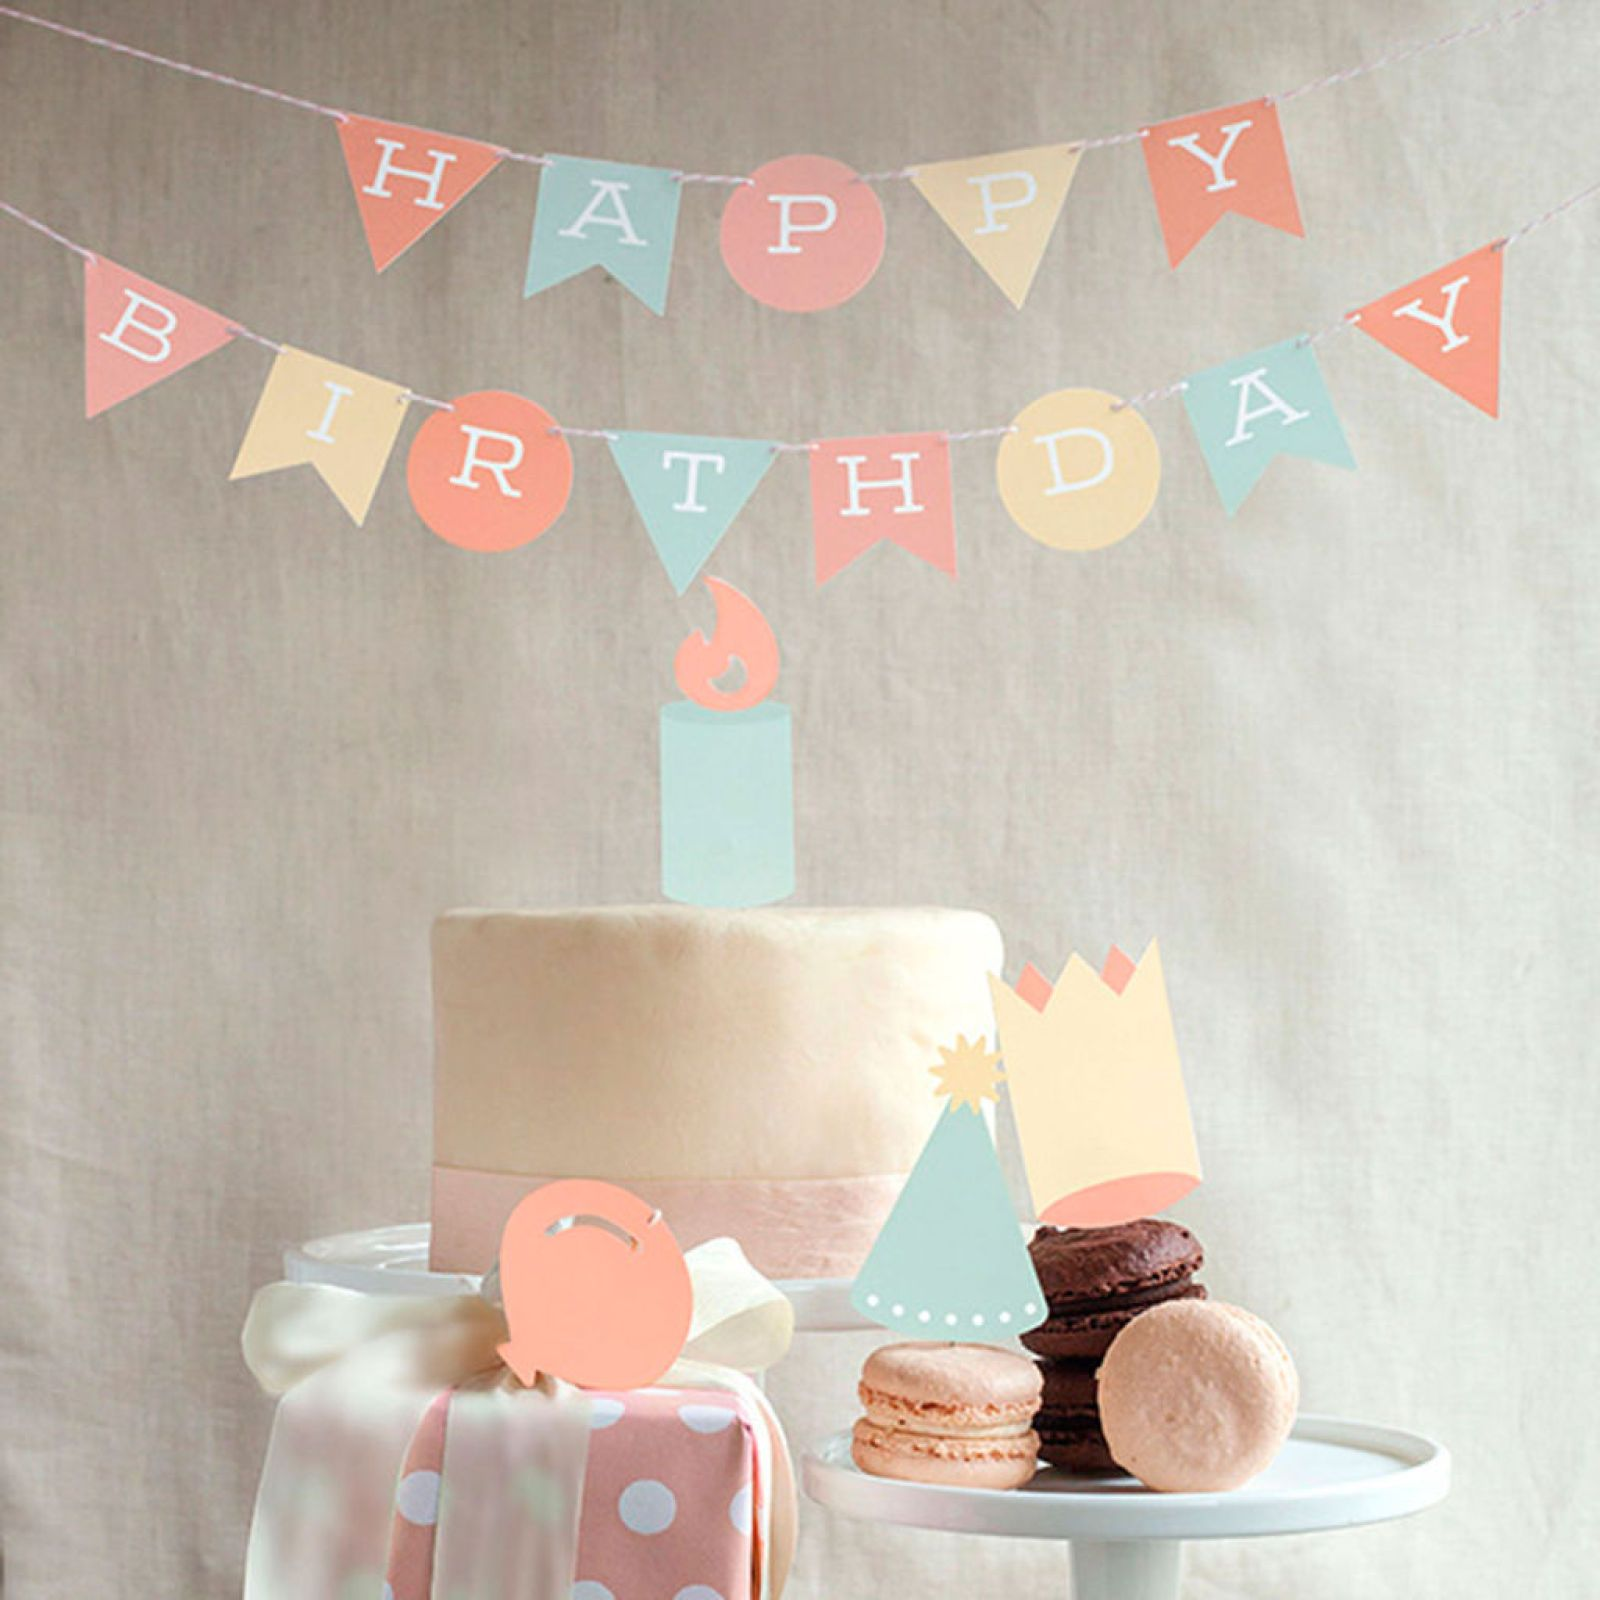 Diy Your Own Party Decorations Using Your New Cricut Explore Air